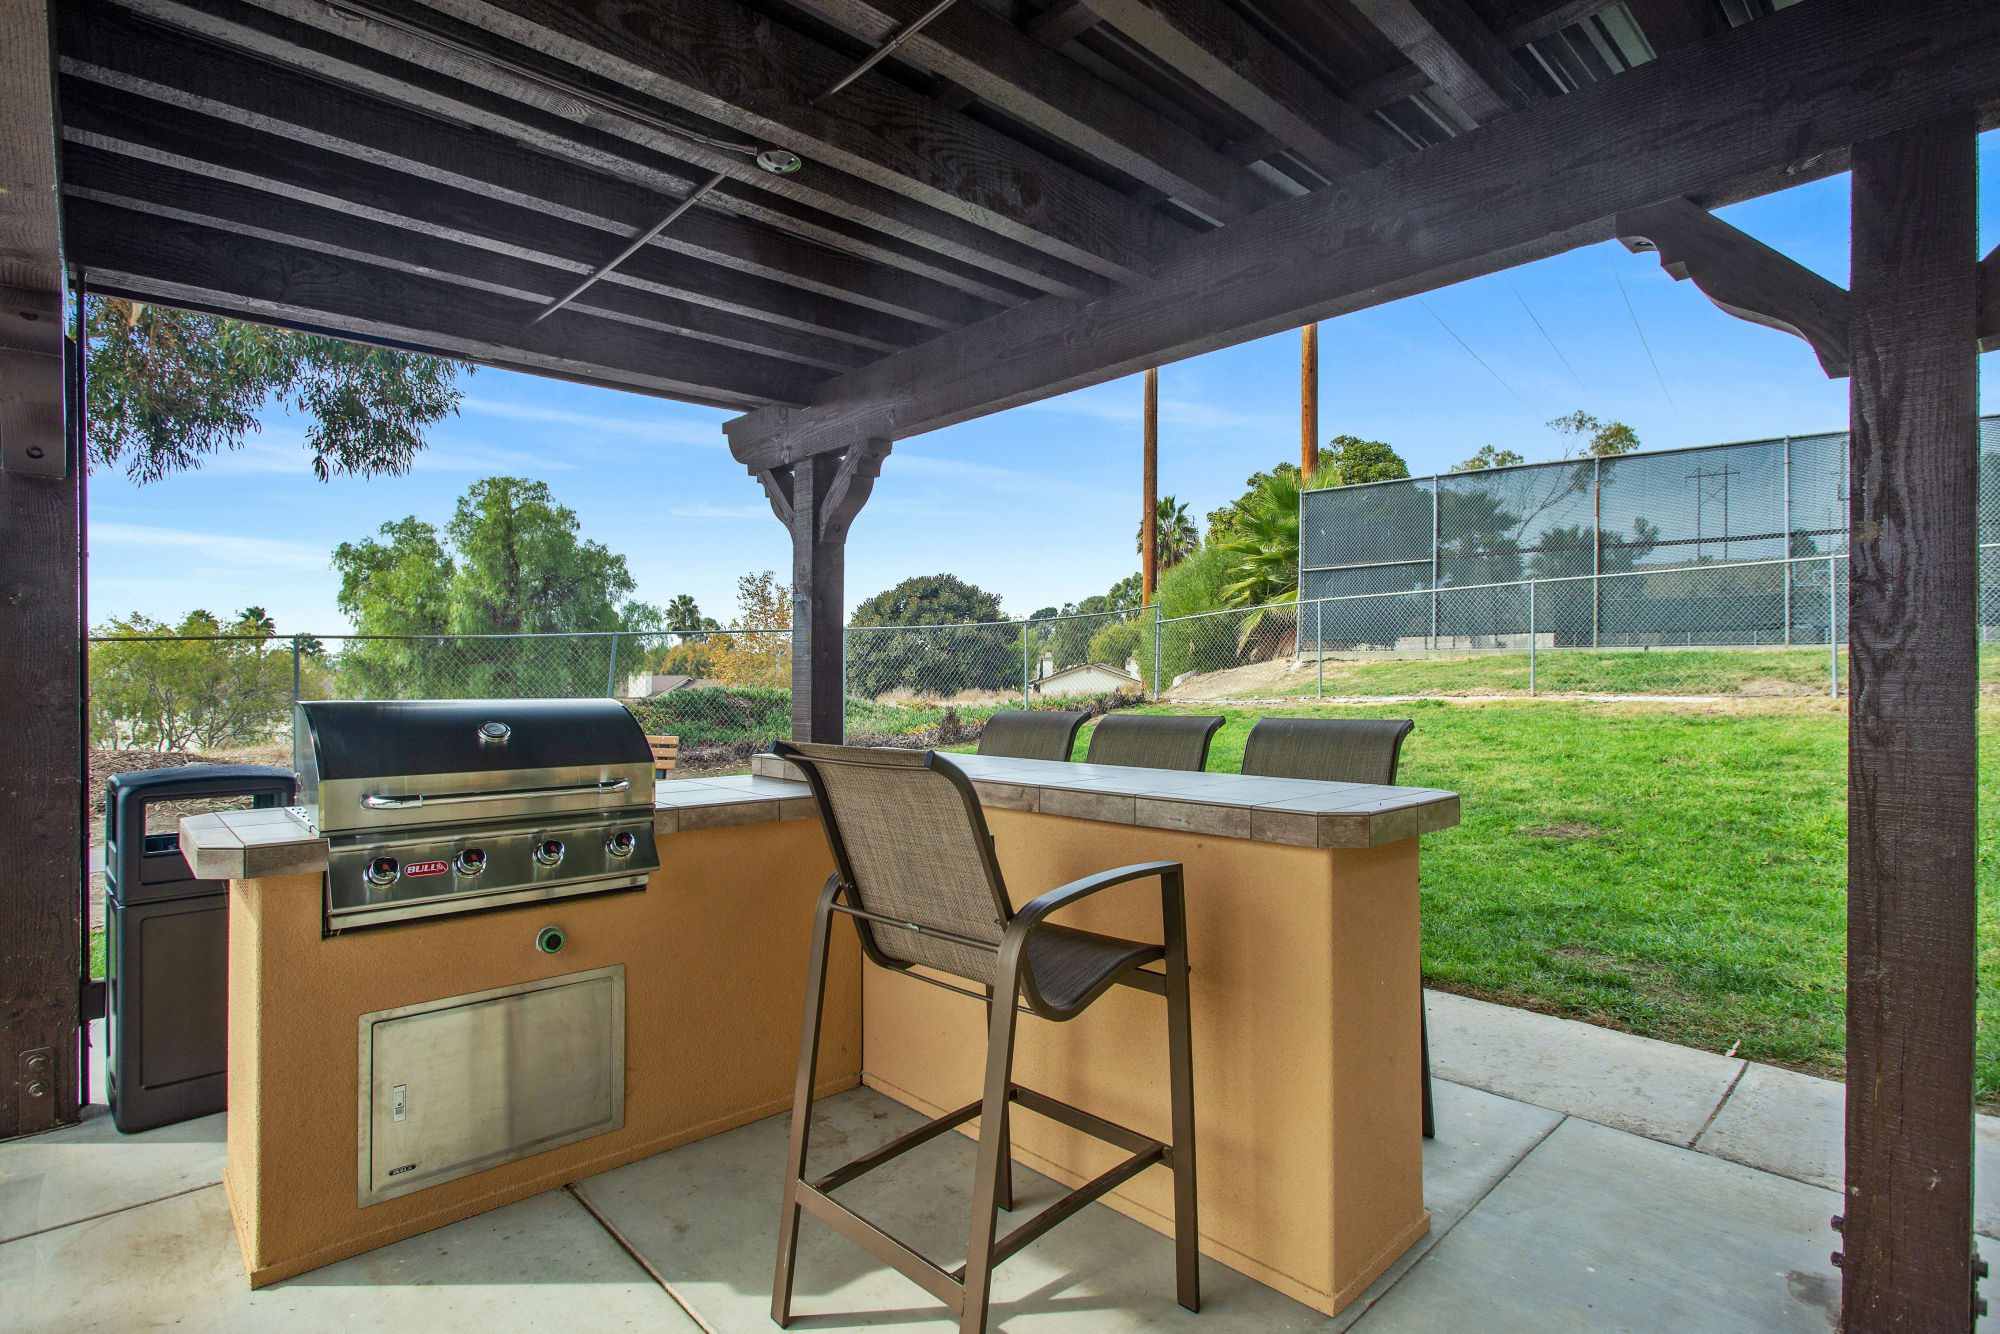 Covered BBQ area with bar top seating at Shadow Ridge Apartments in Oceanside, California